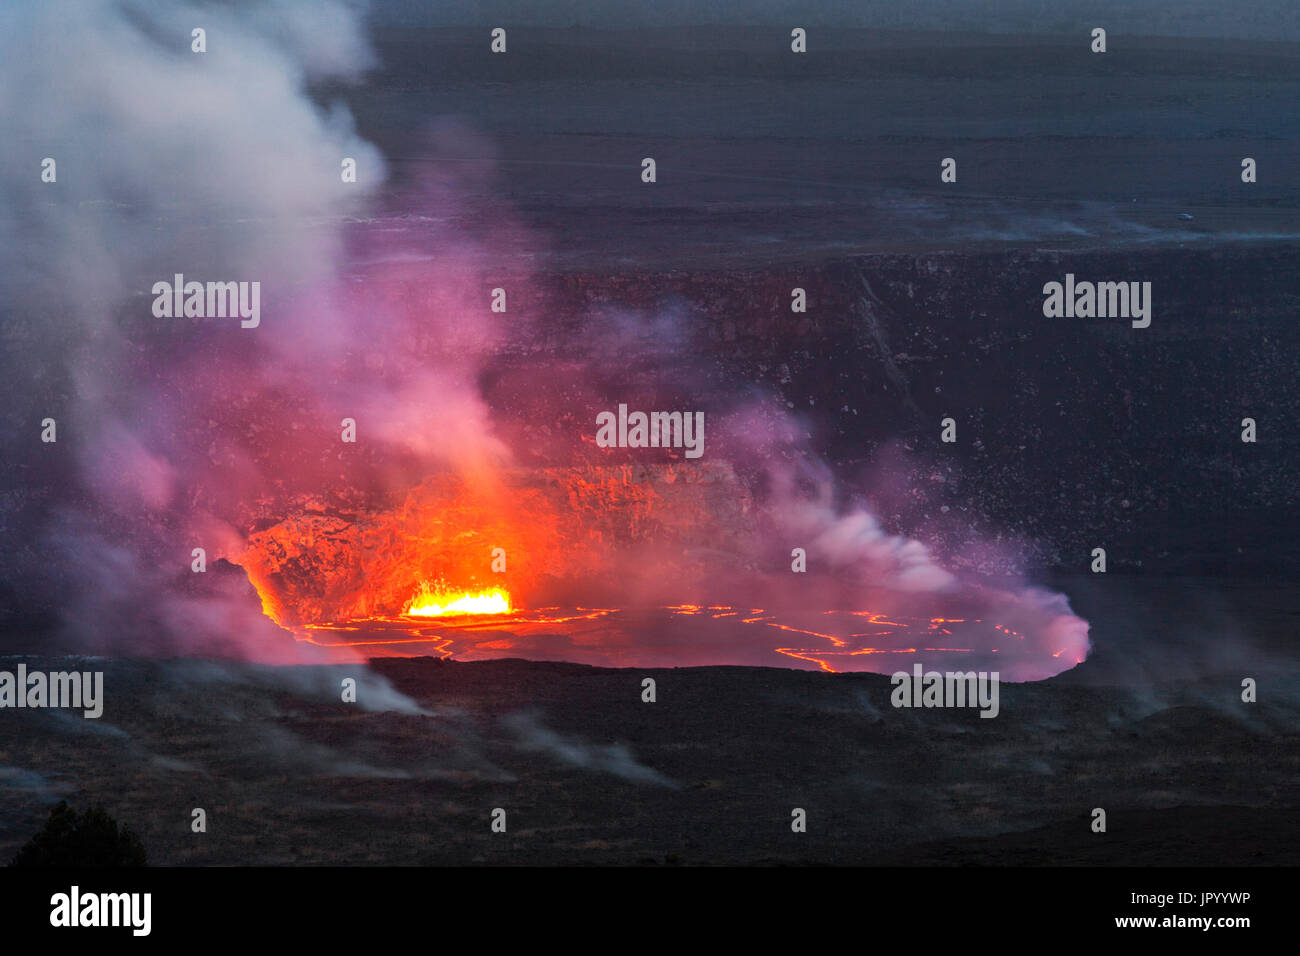 HI00247-00...HAWAI'I - Lava glowing in the Halema'uma'u Crater viewed from the Jaggar Museum in Volcanoes National Park on the island of Hawai'i. - Stock Image